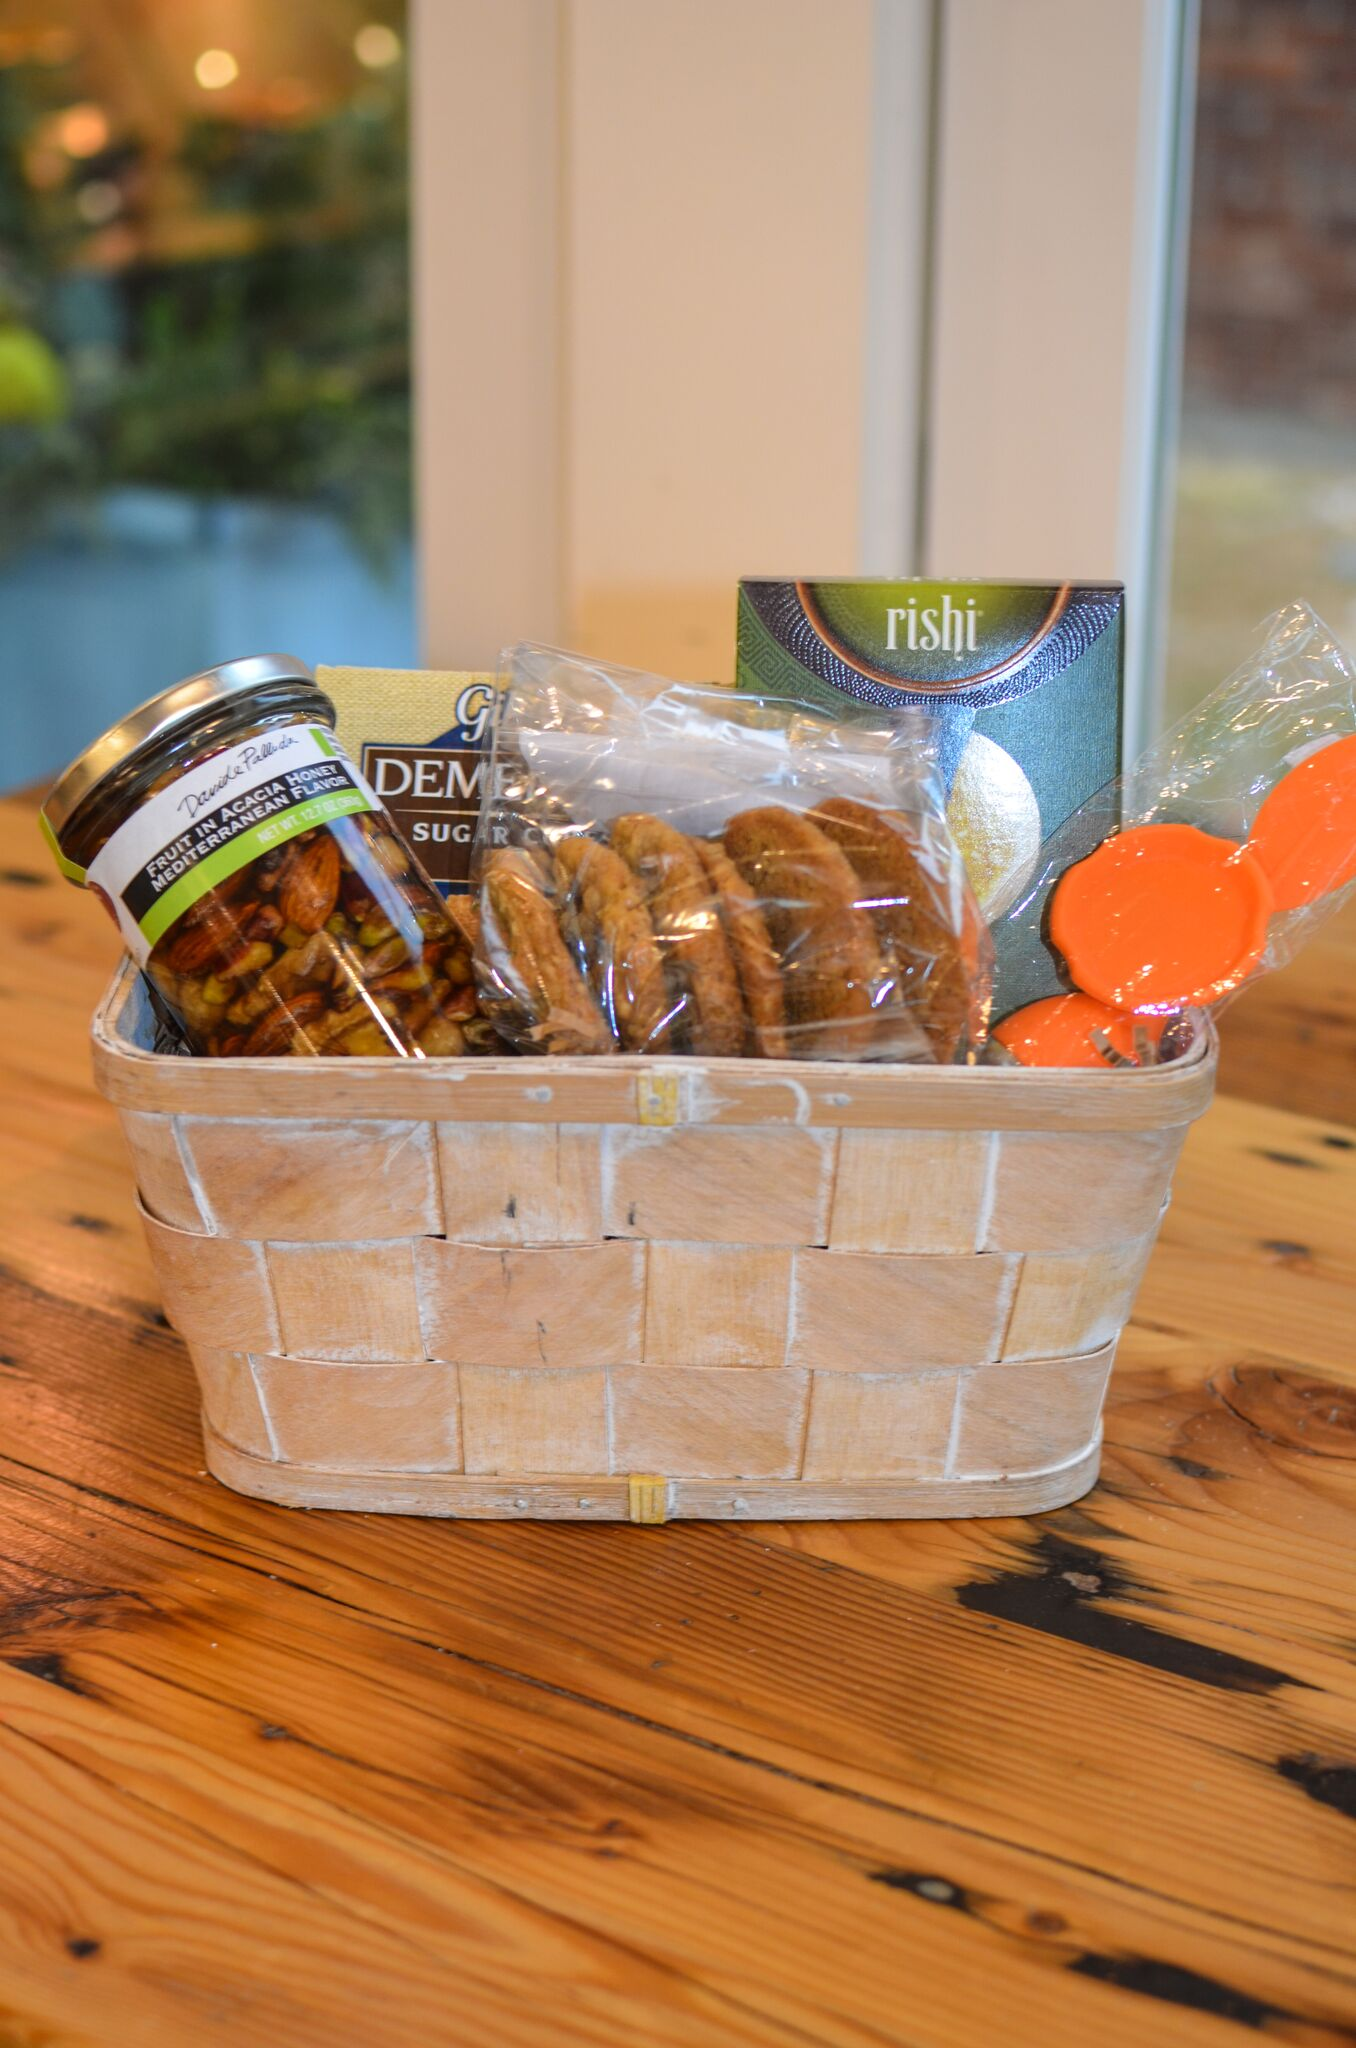 Tea Time Basket from Gentle Harvest // Price: $49 // Buy in store or call ahead //{&nbsp;}www.gentleharvest.com // (Image: Gentle Harvest)<p></p>